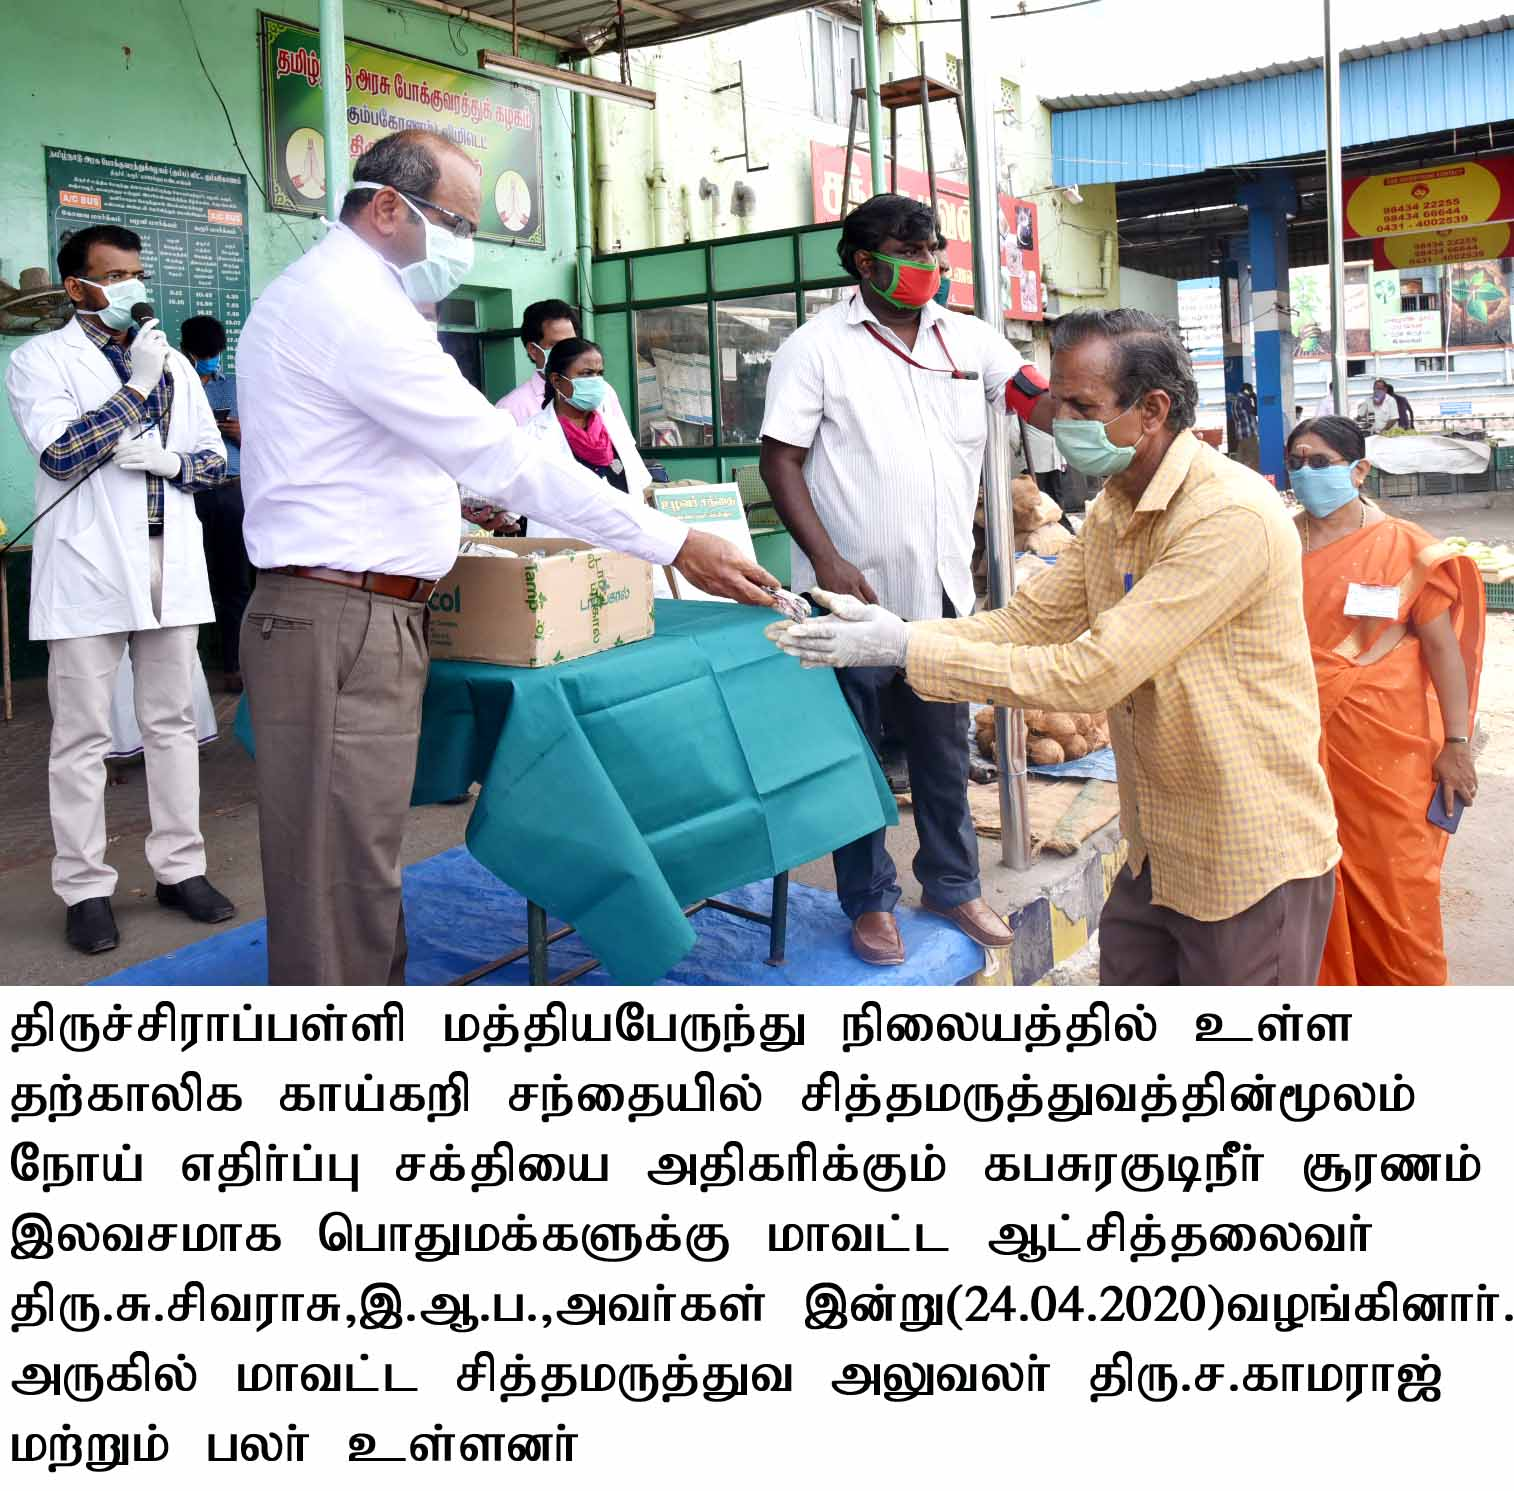 District Collector Distributed the kabasura kudineer to public on 24-04-2020